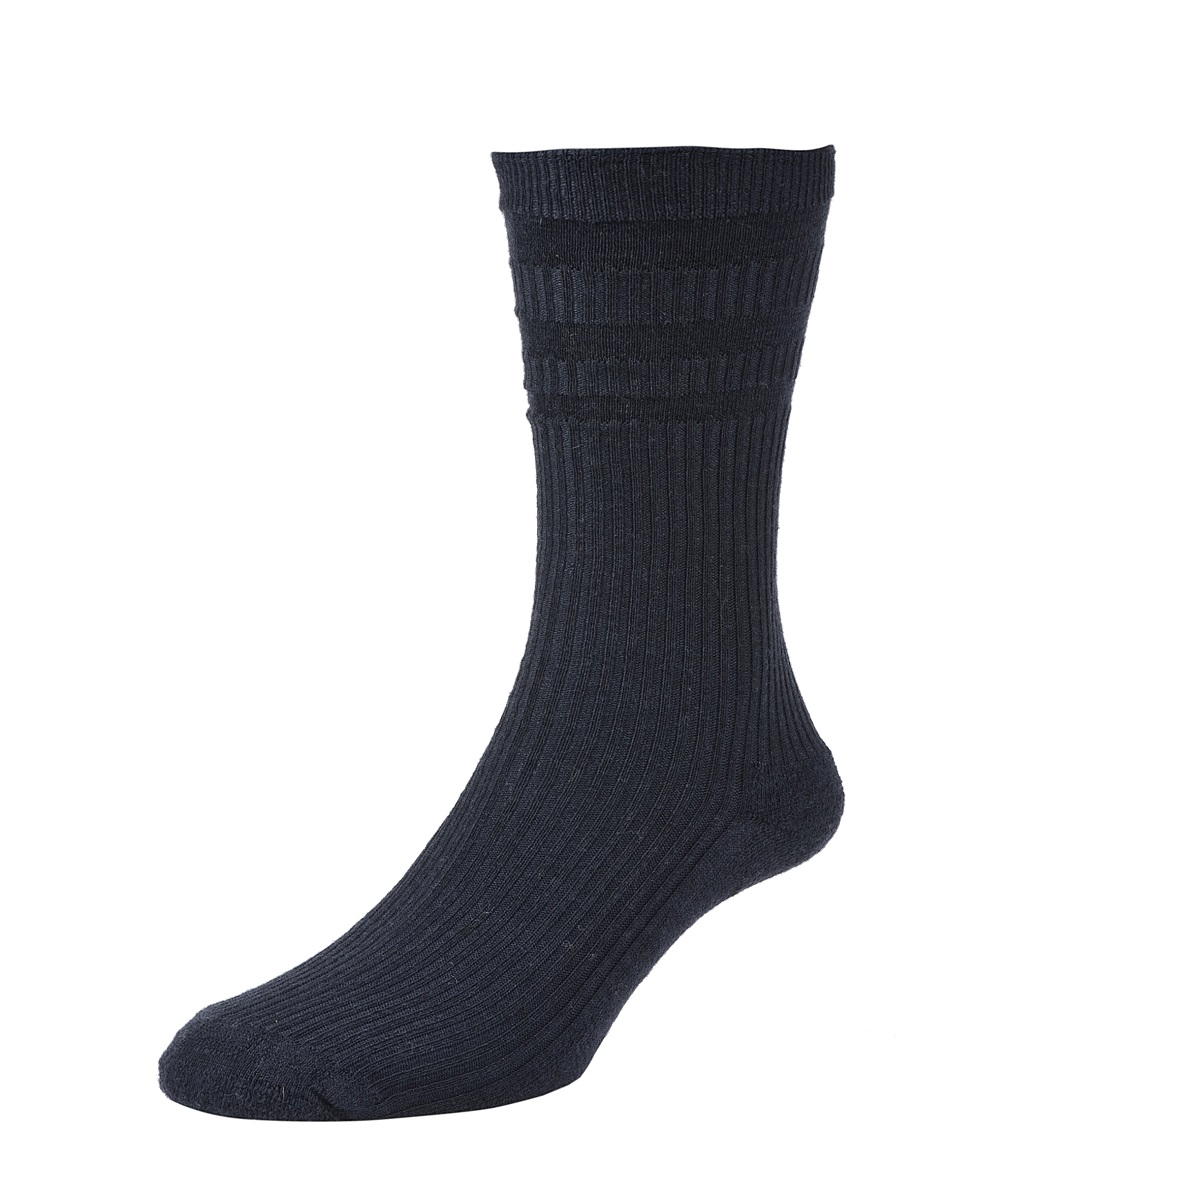 HJ Hall Softop Thermal Mens Socks size 11-13UK Dark Navy HJ95